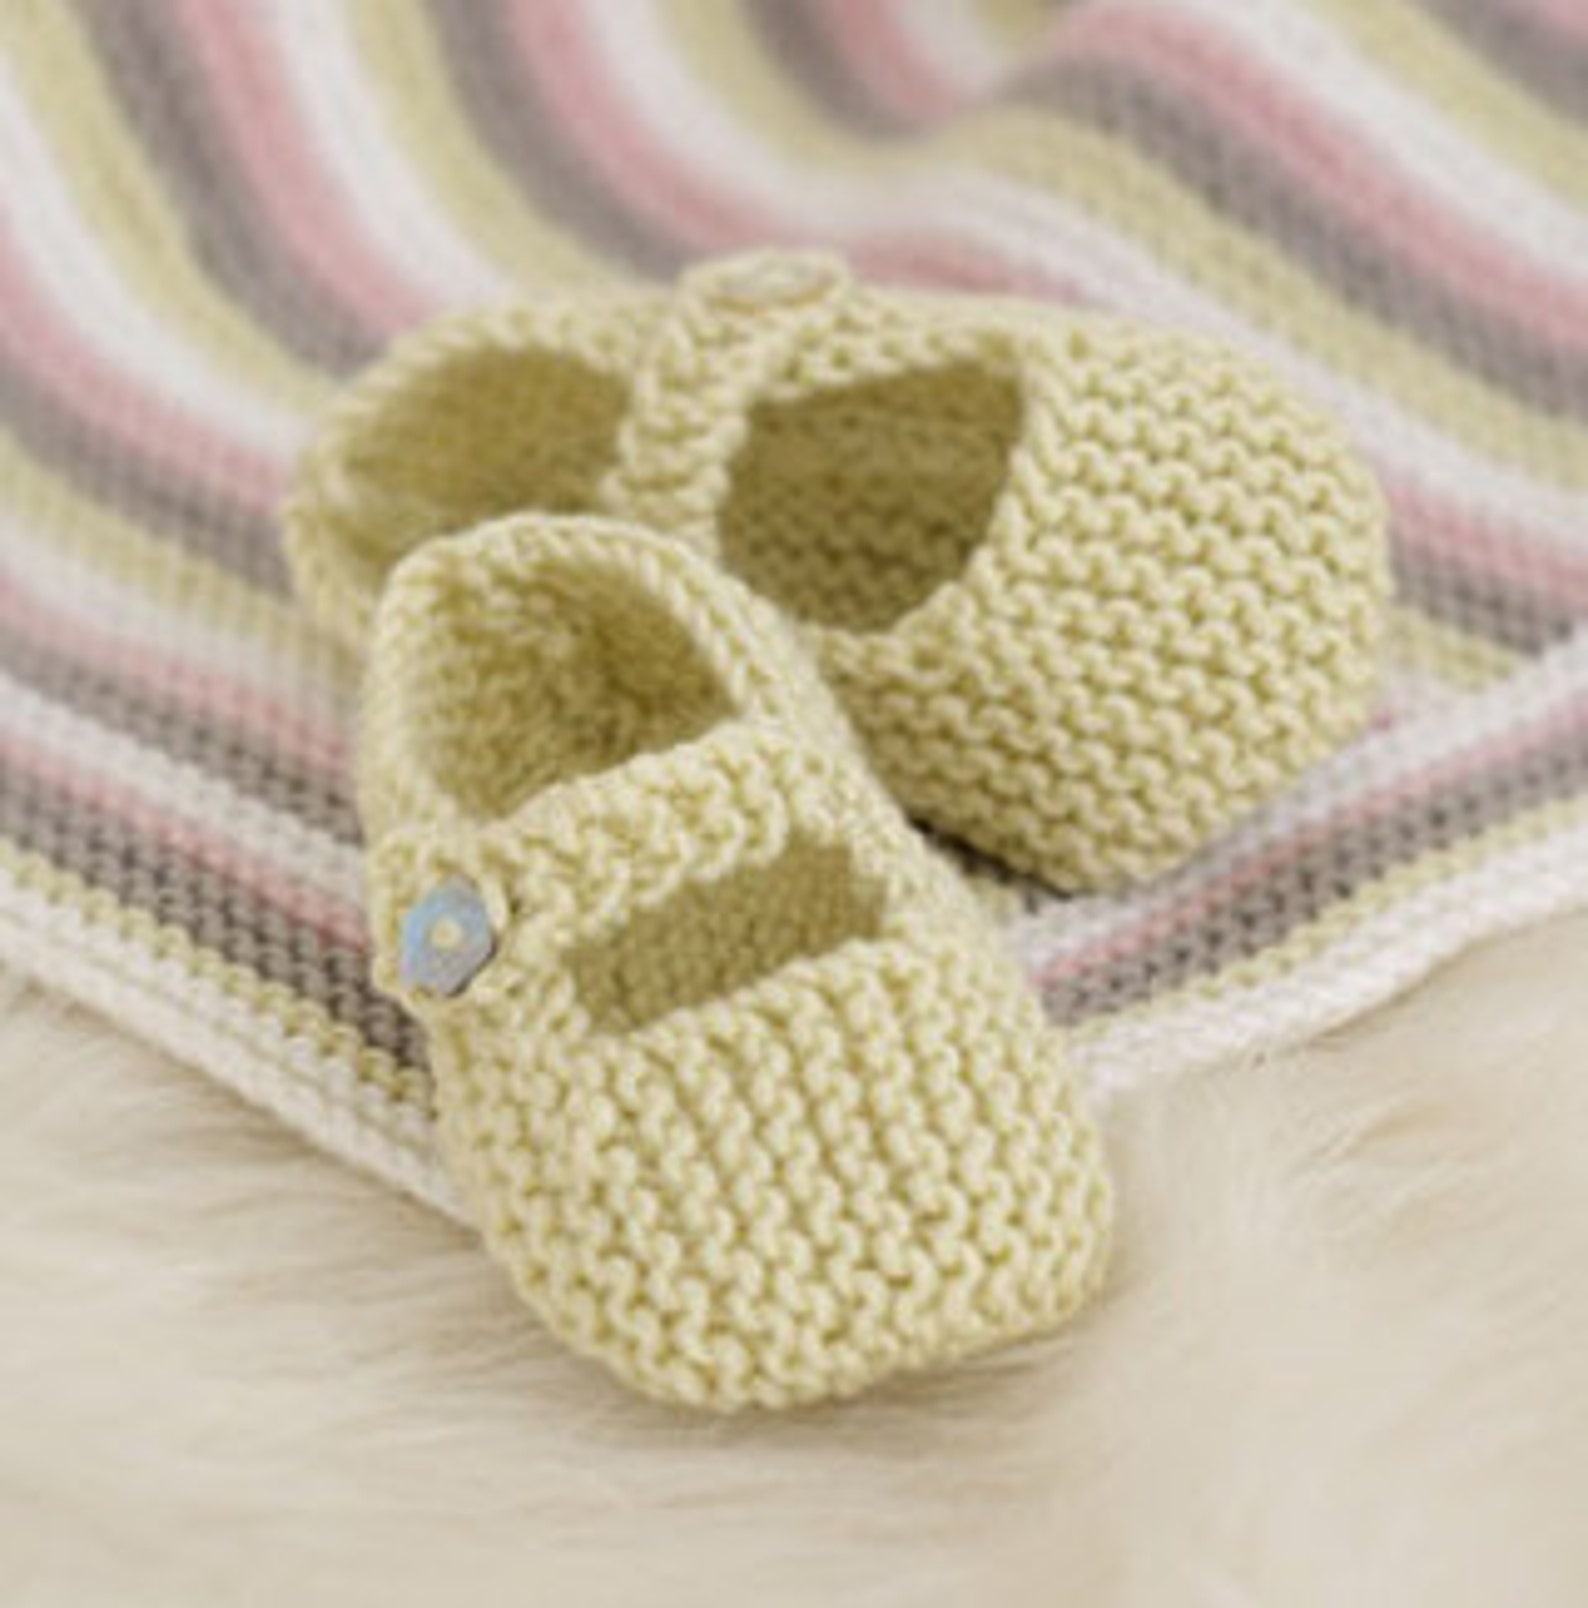 baby knitting pattern for baby shoes . mary jane / t bar / ballet pumps dk yarn birth /12m boys girls